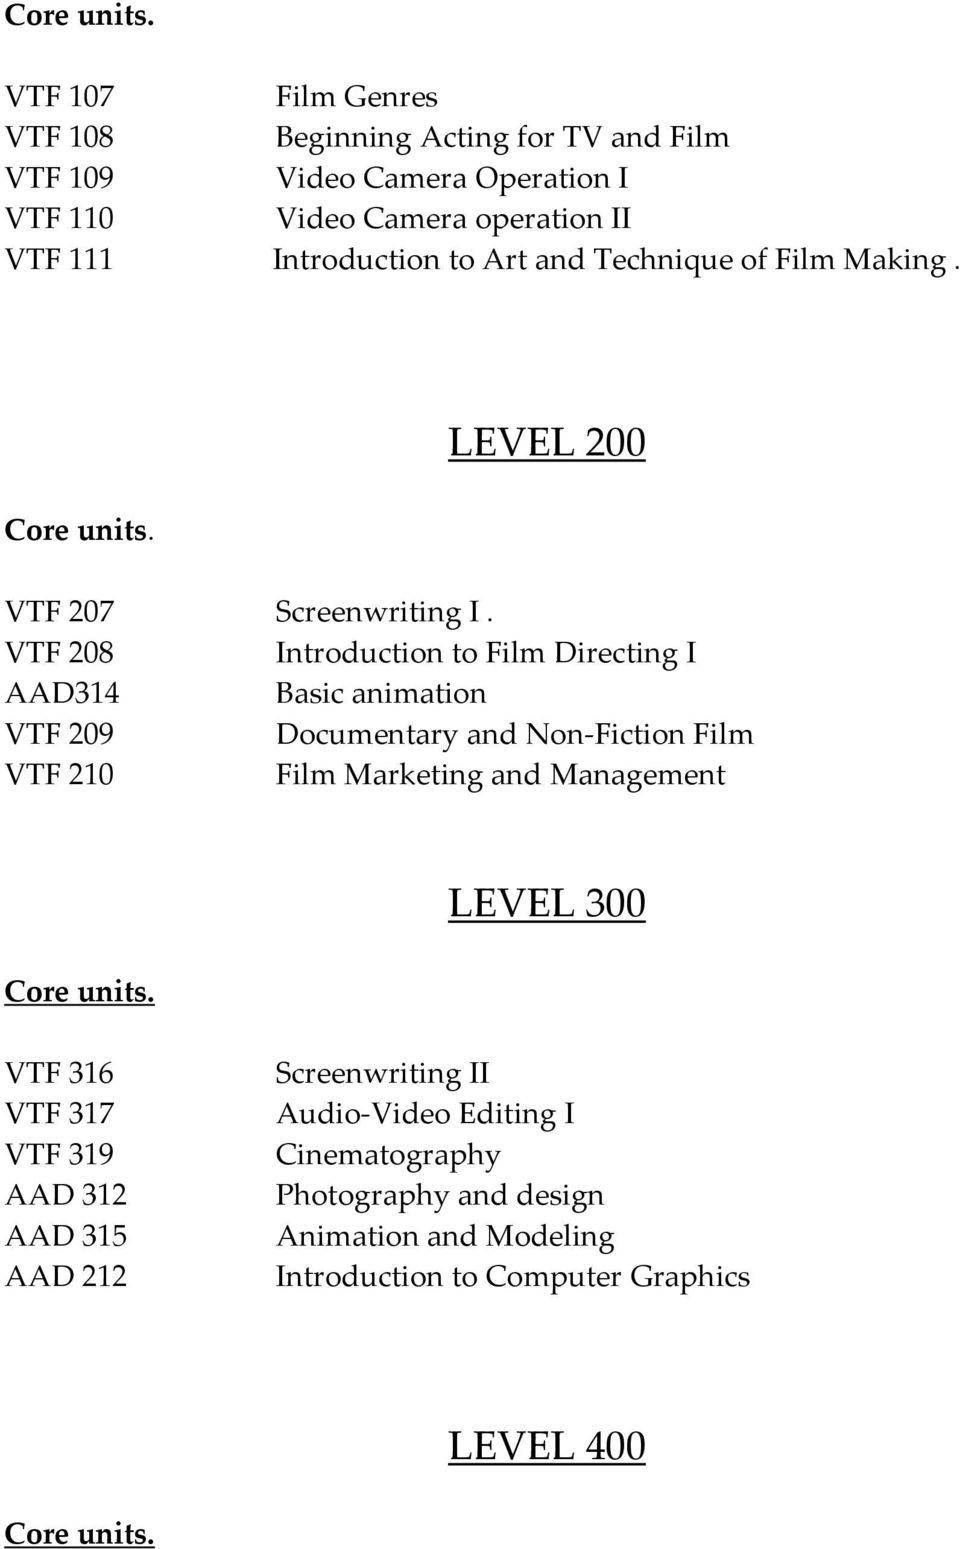 VTF 208 Introduction to Film Directing I AAD314 Basic animation VTF 209 Documentary and Non Fiction Film VTF 210 Film Marketing and